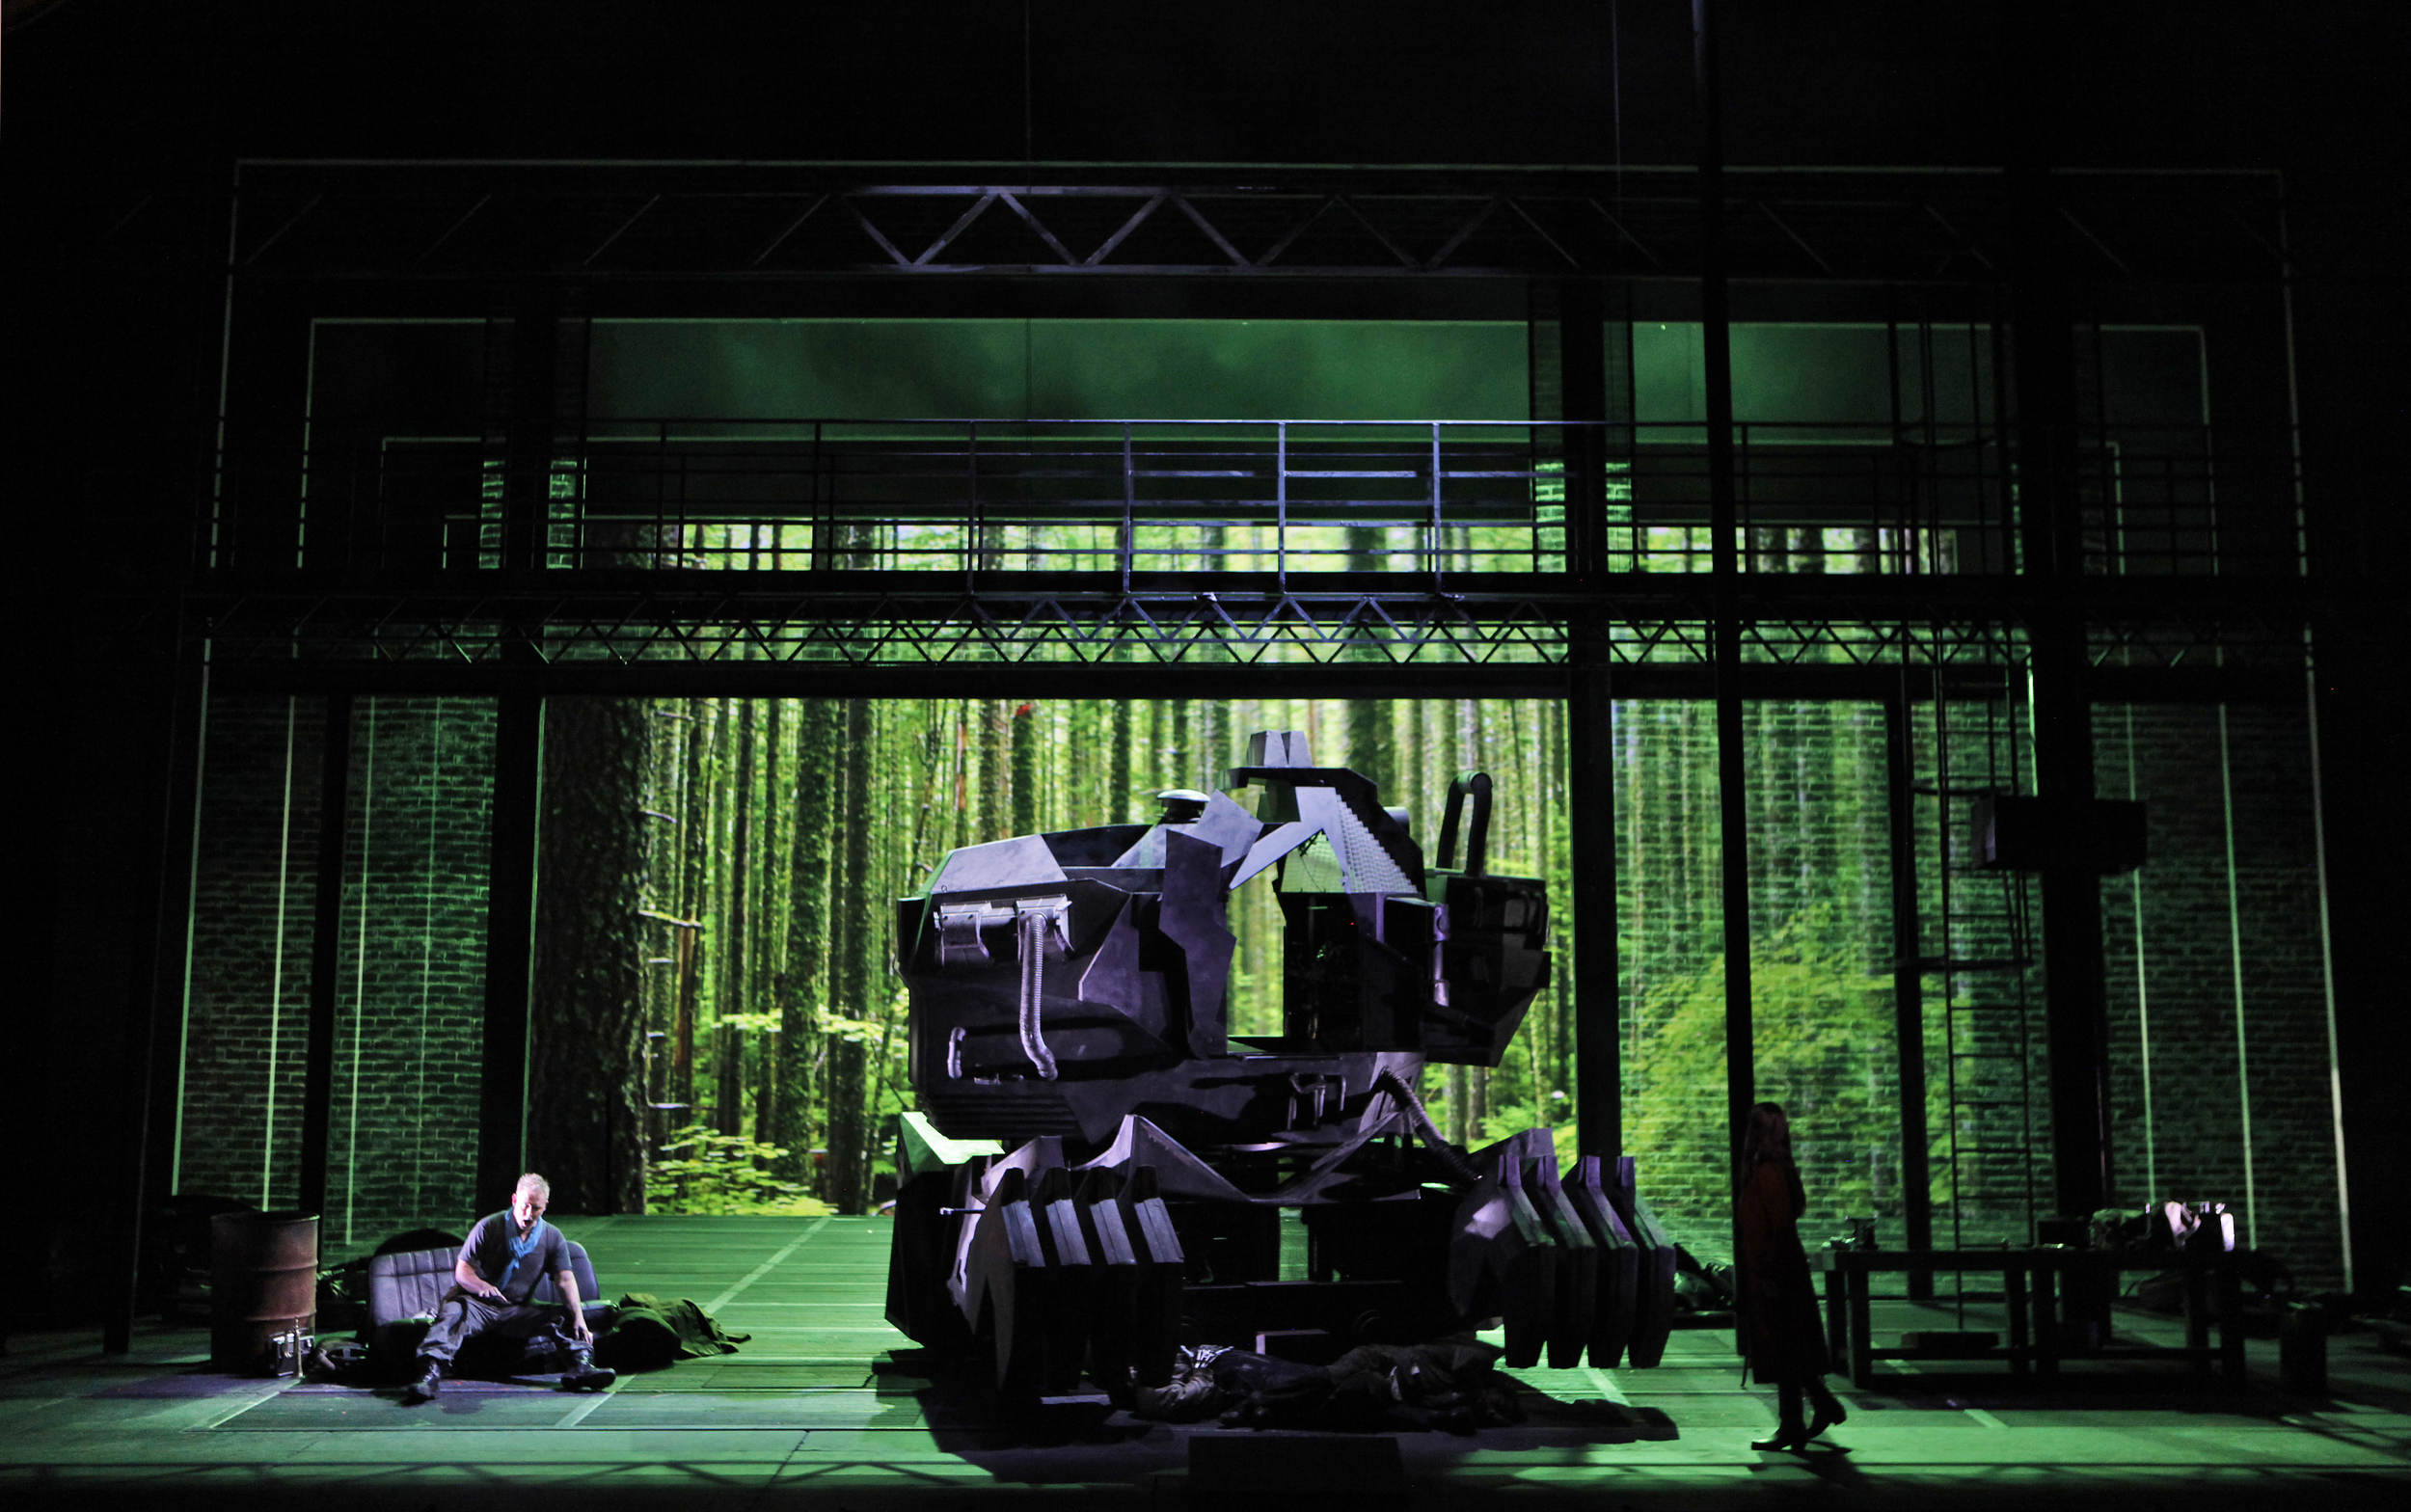 Siegfried rests pondering next steps after dispatching the dragon (the form taken by the giant, Fafner, who along with Mime, lies expired in front of the dragon). Photo courtesy of the Washington National Opera/Kennedy Center.